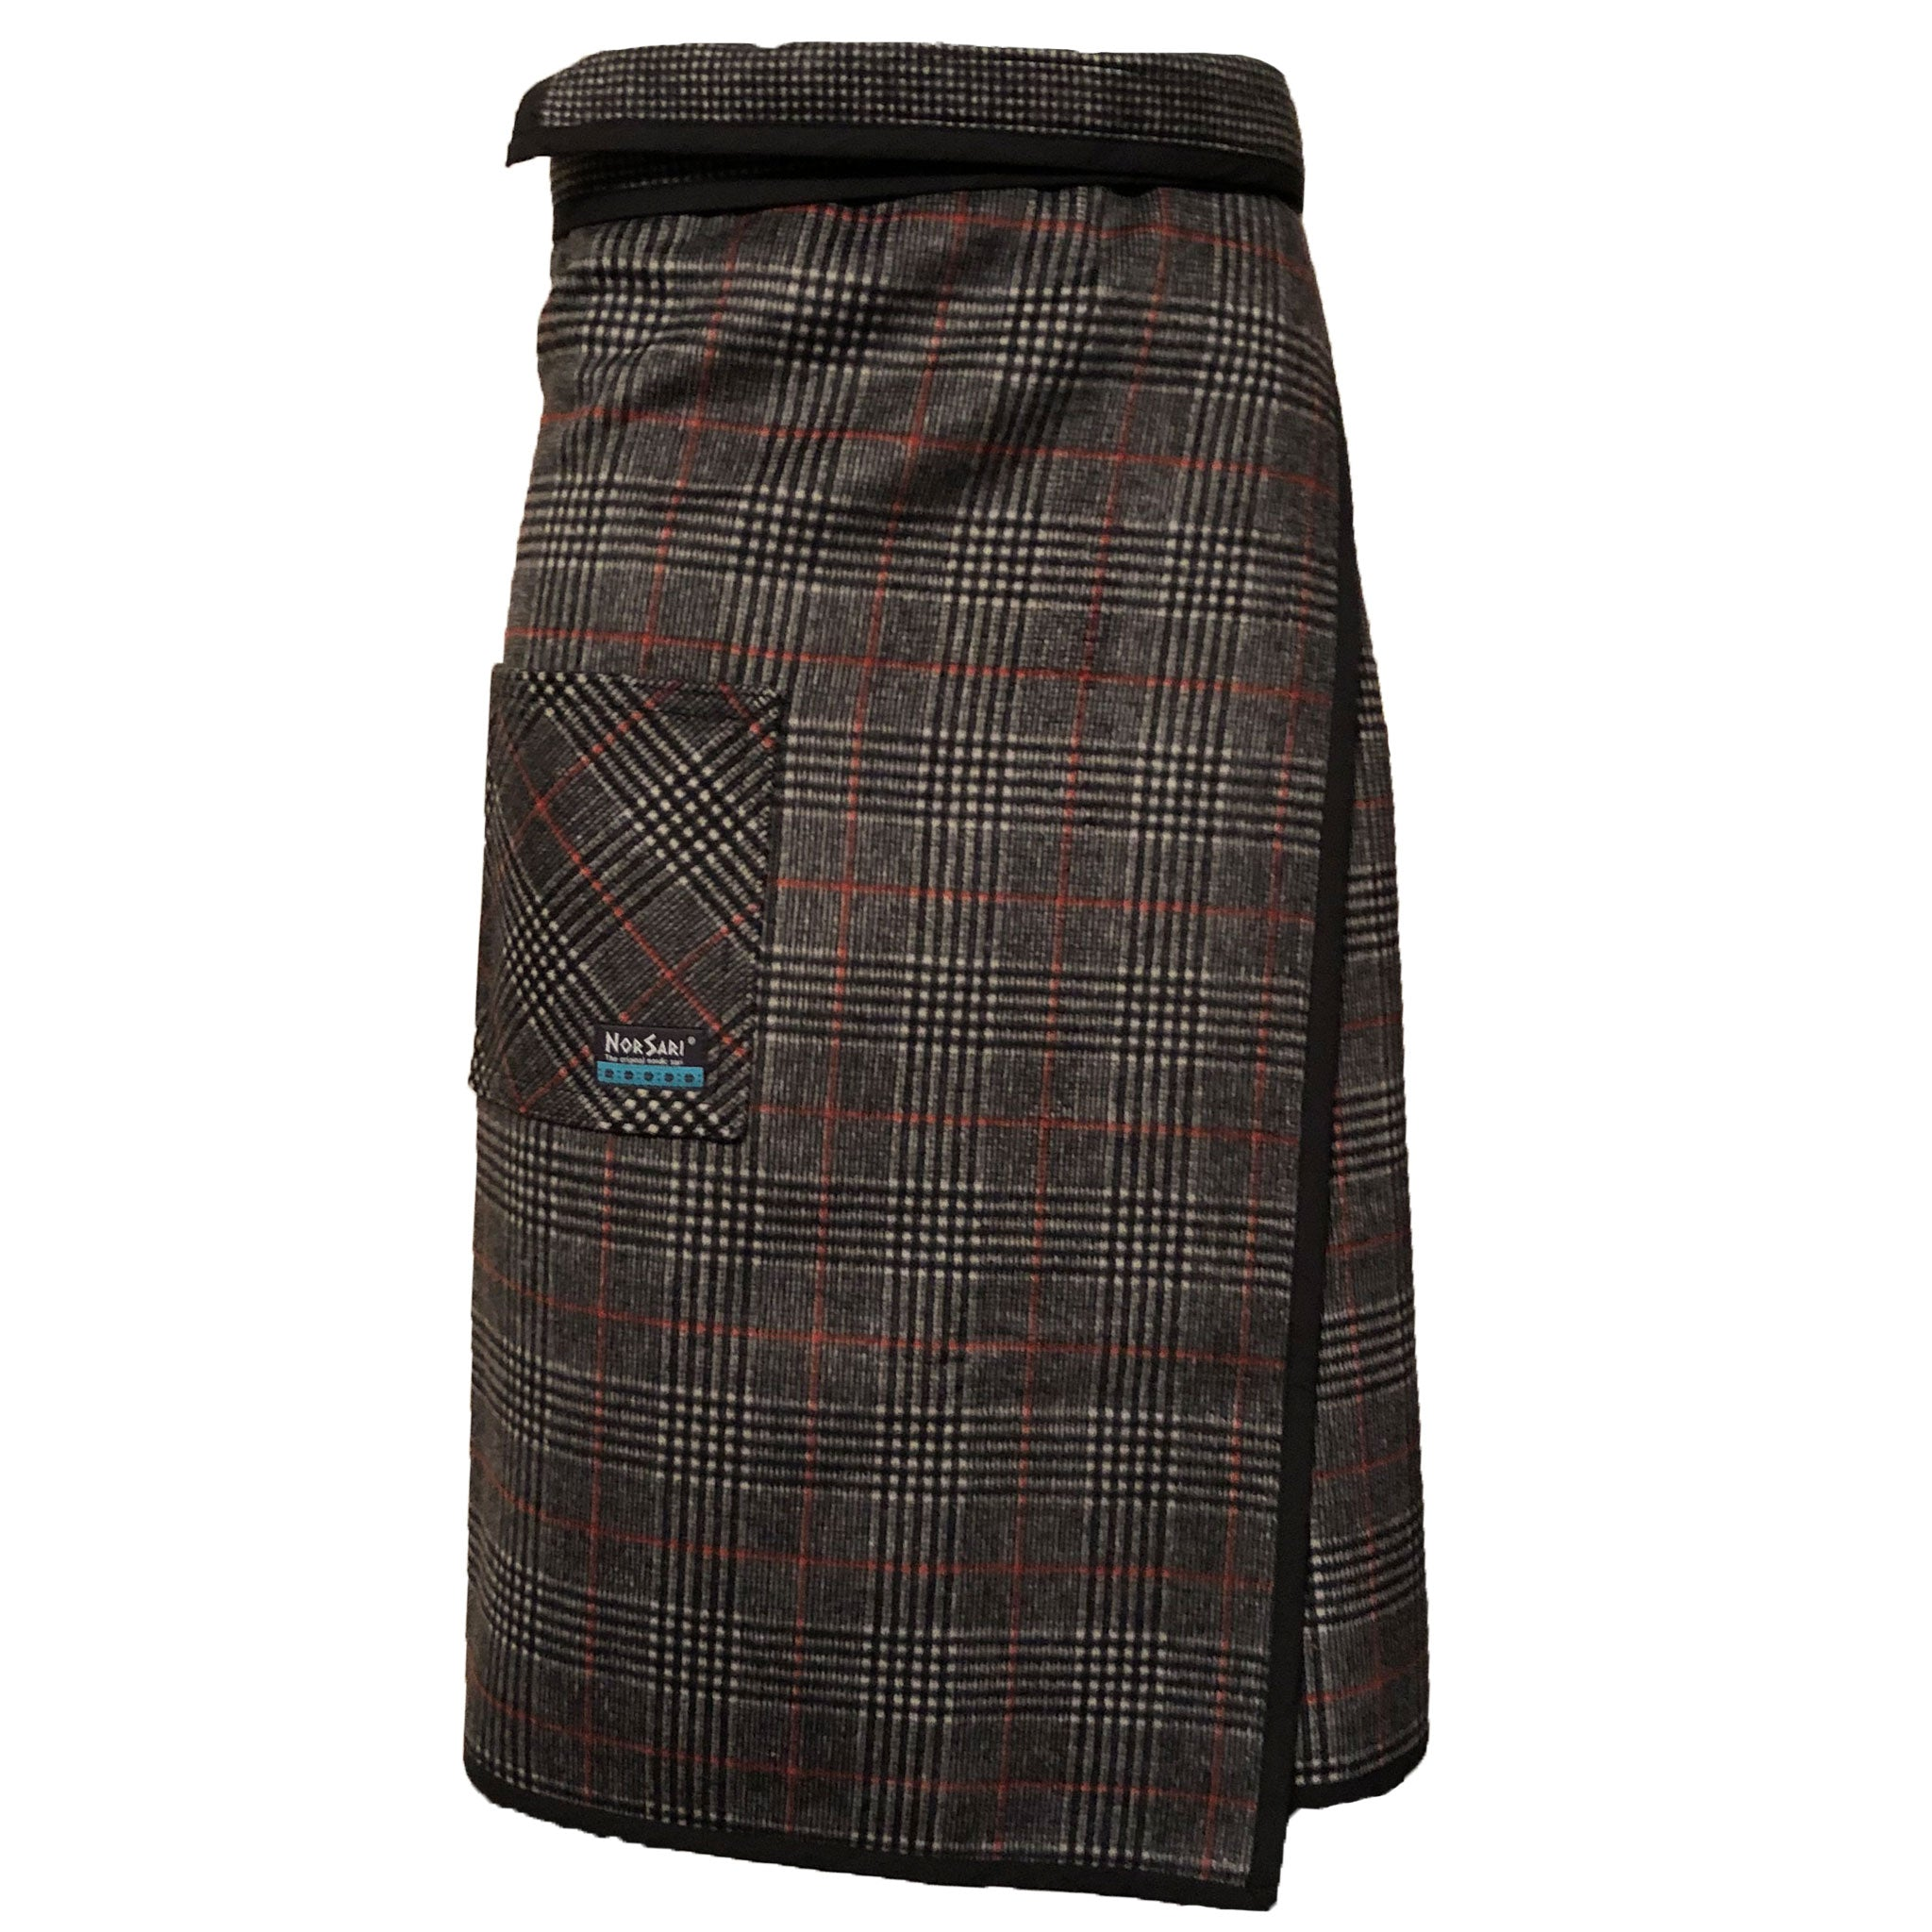 The Aberdeen Plaid